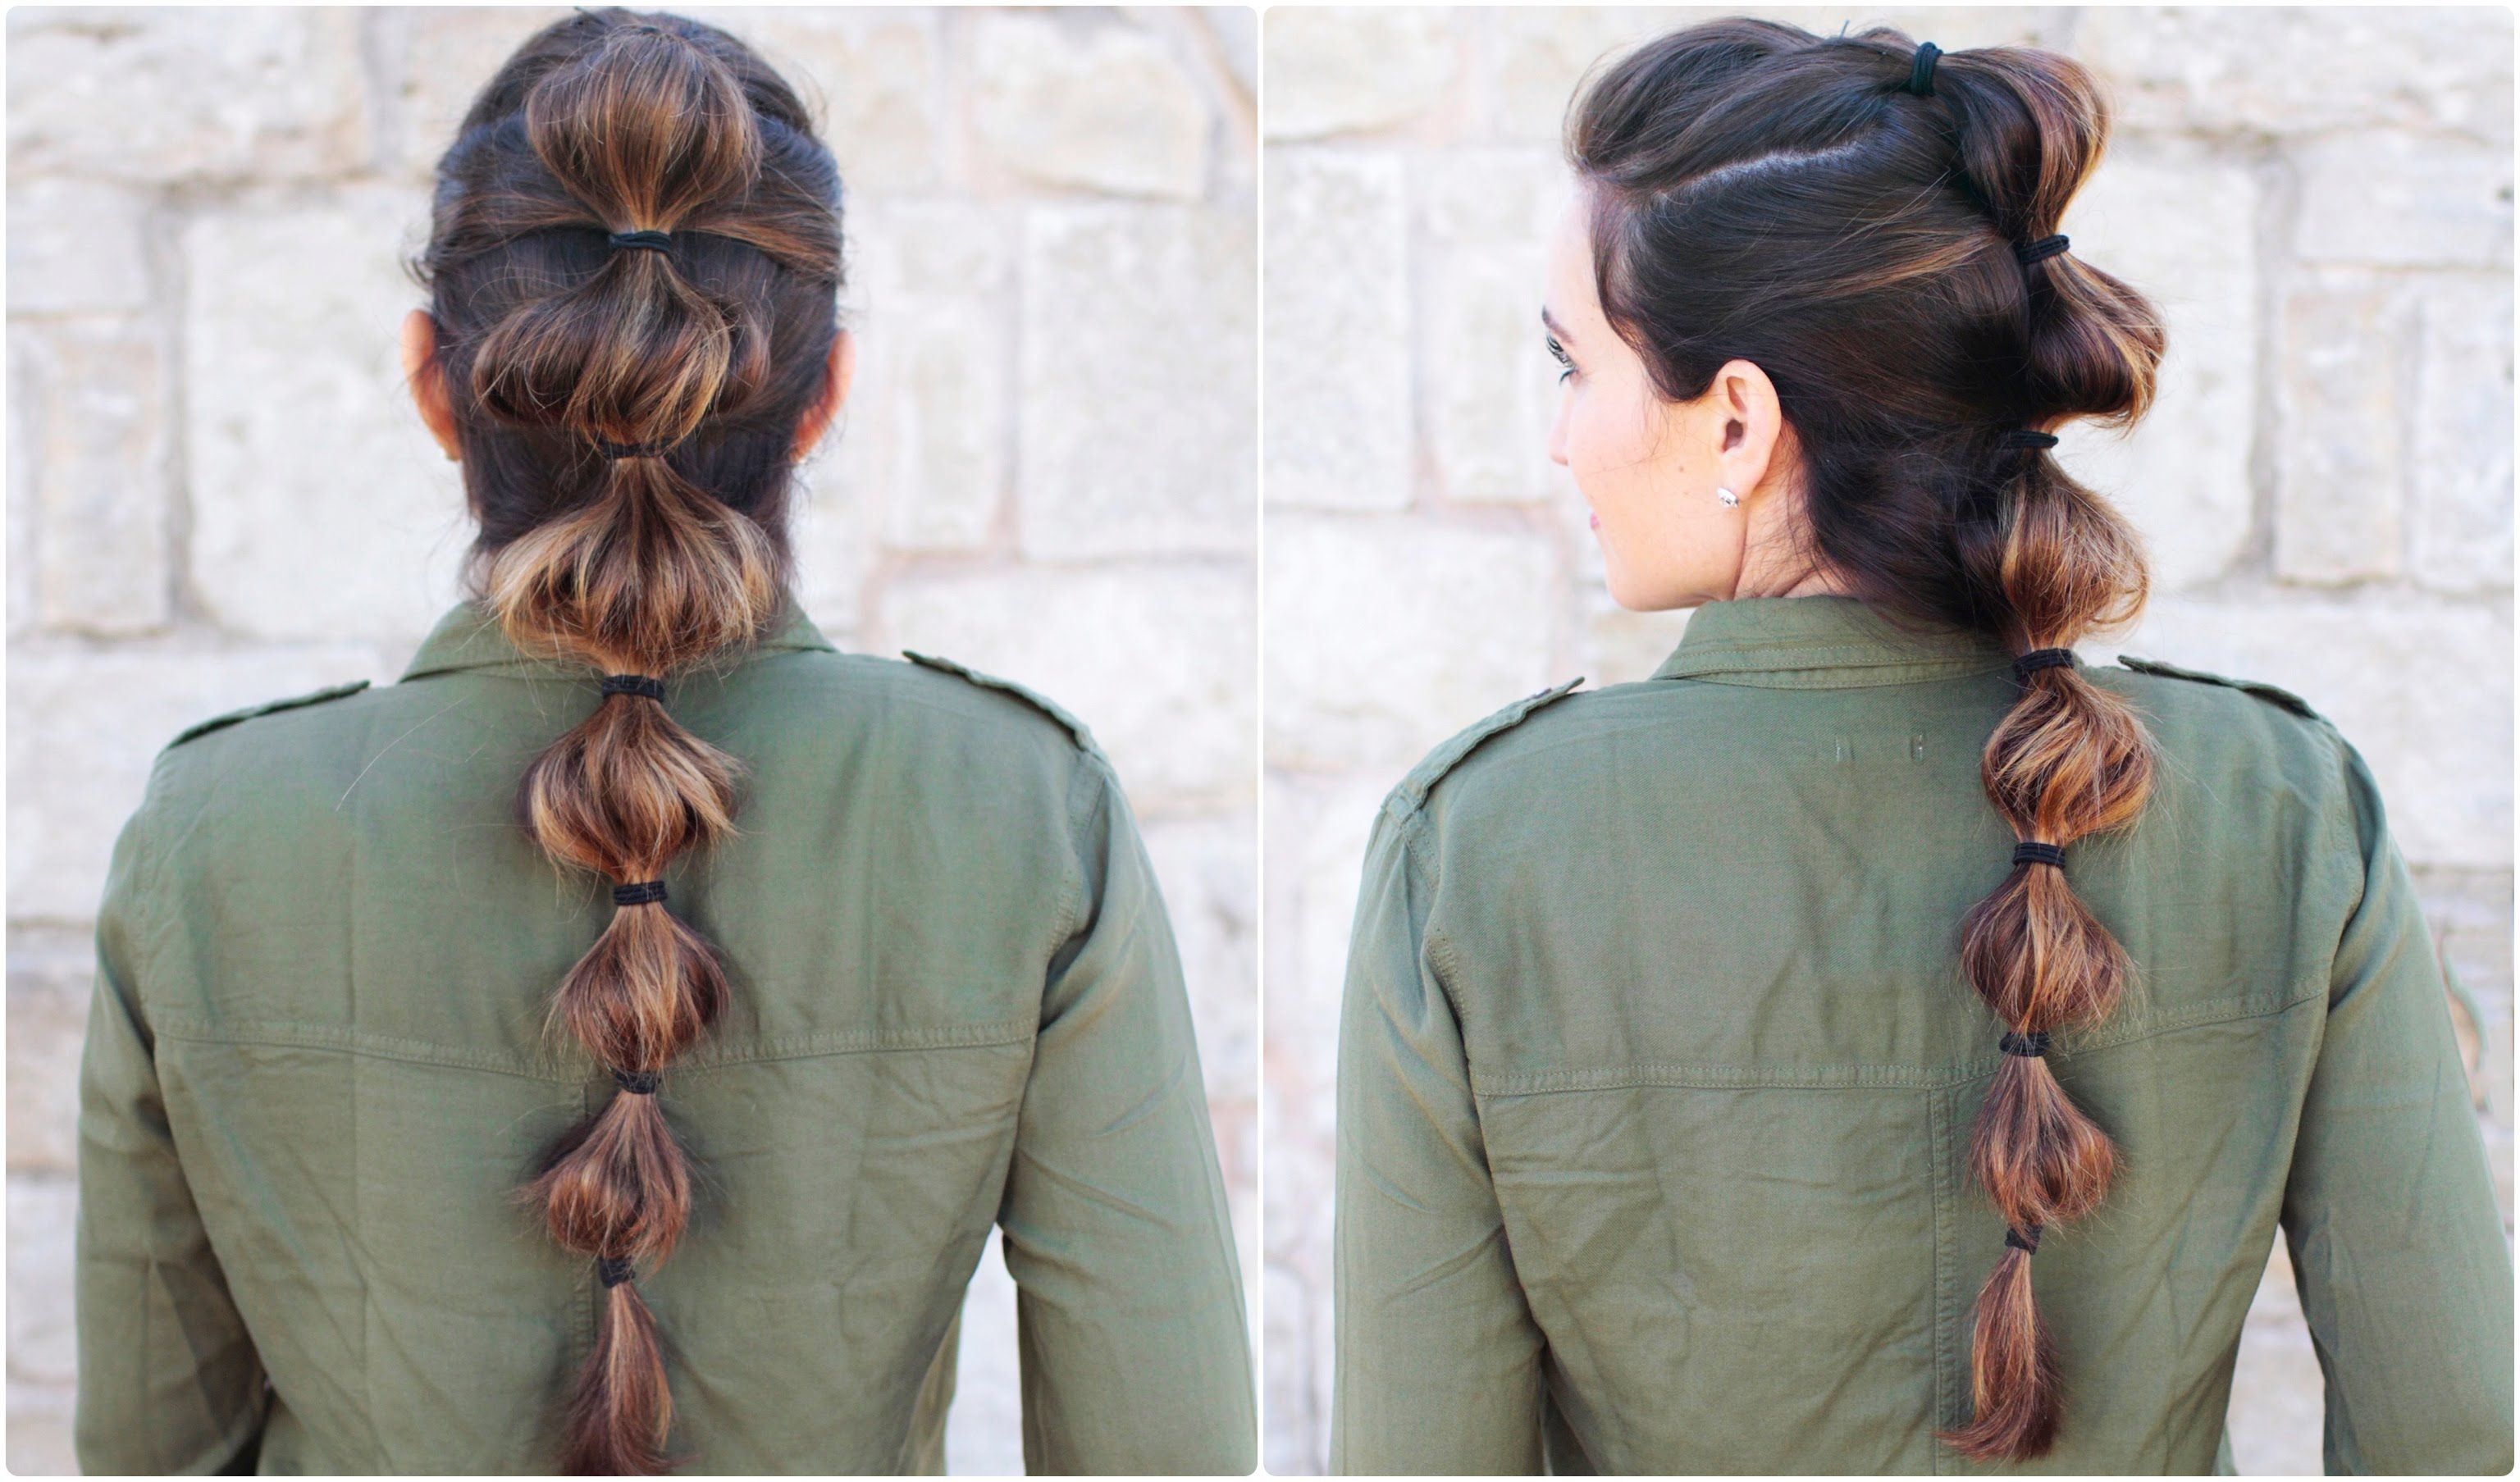 Cute Heart Ponytail Cute Girls Hairstyles